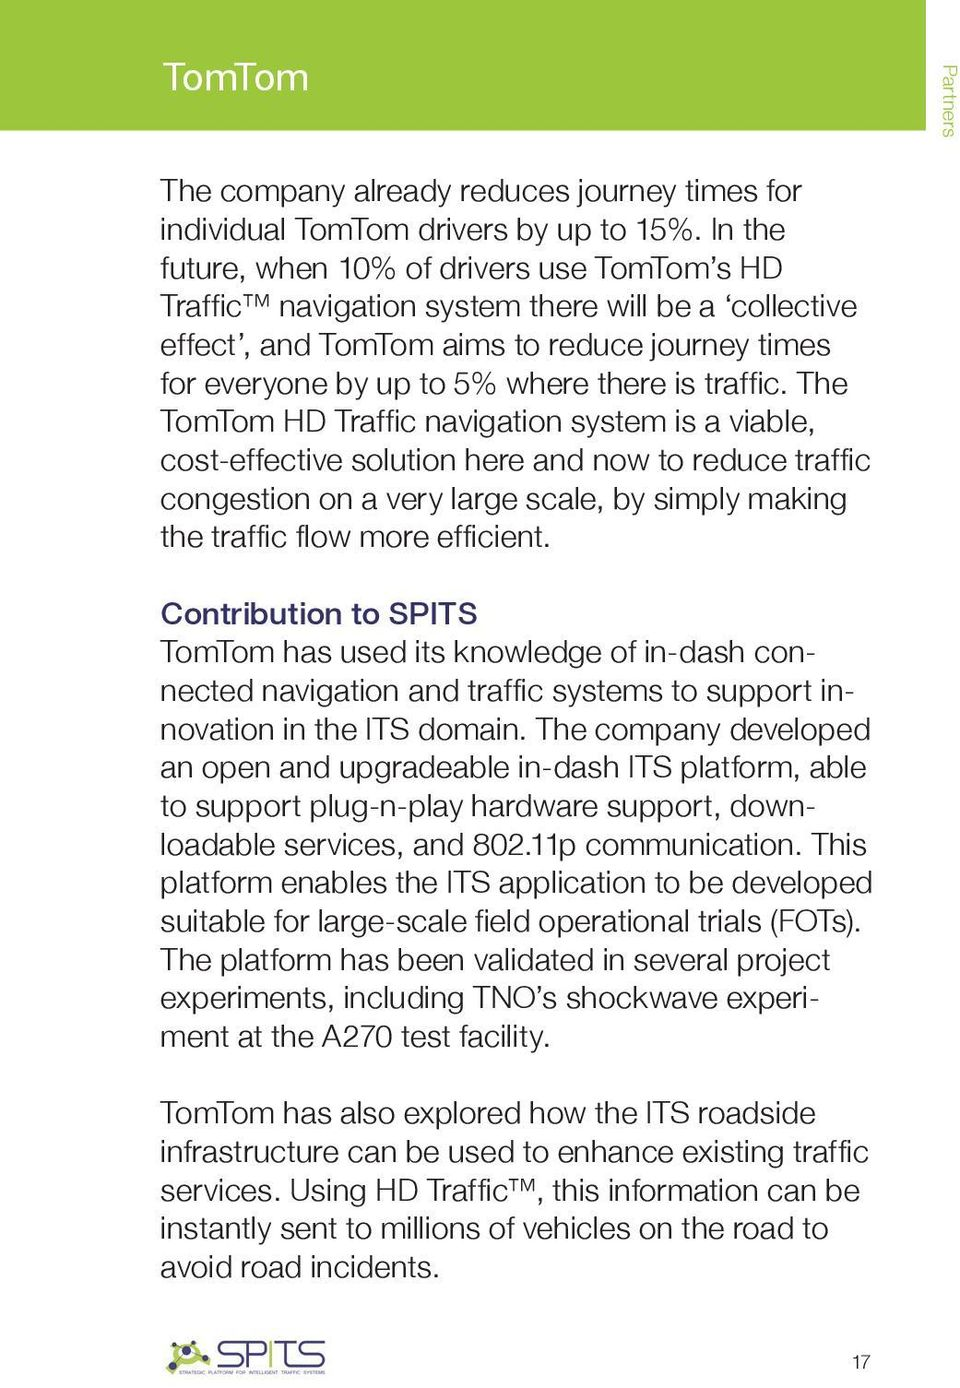 The TomTom HD Traffic navigation system is a viable, cost-effective solution here and now to reduce traffic congestion on a very large scale, by simply making the traffic flow more efficient.